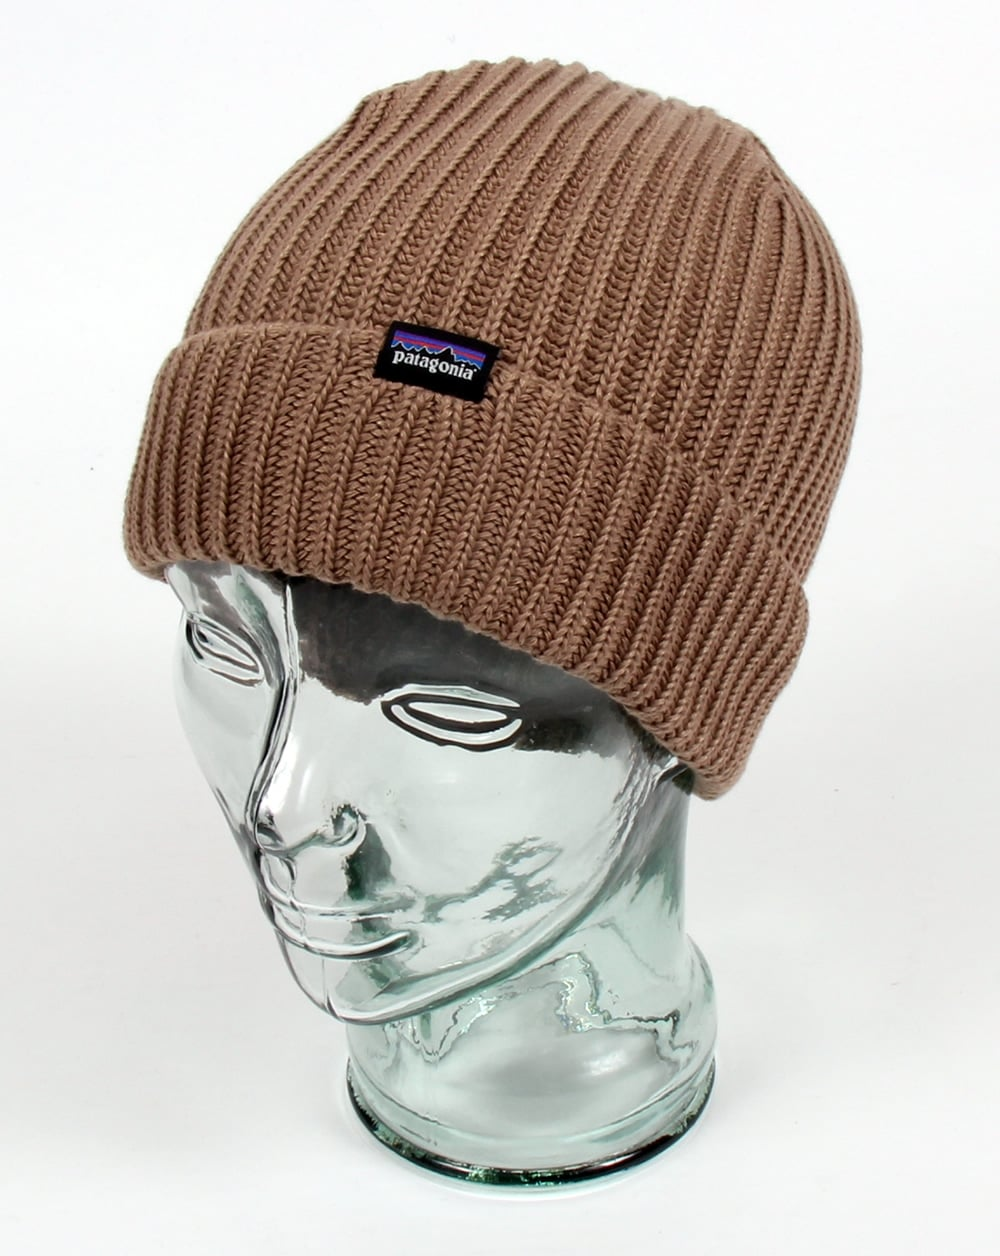 631f0730959 Patagonia Fishermans Rolled Beanie Ash Tan - Hats And Caps from 80s ...